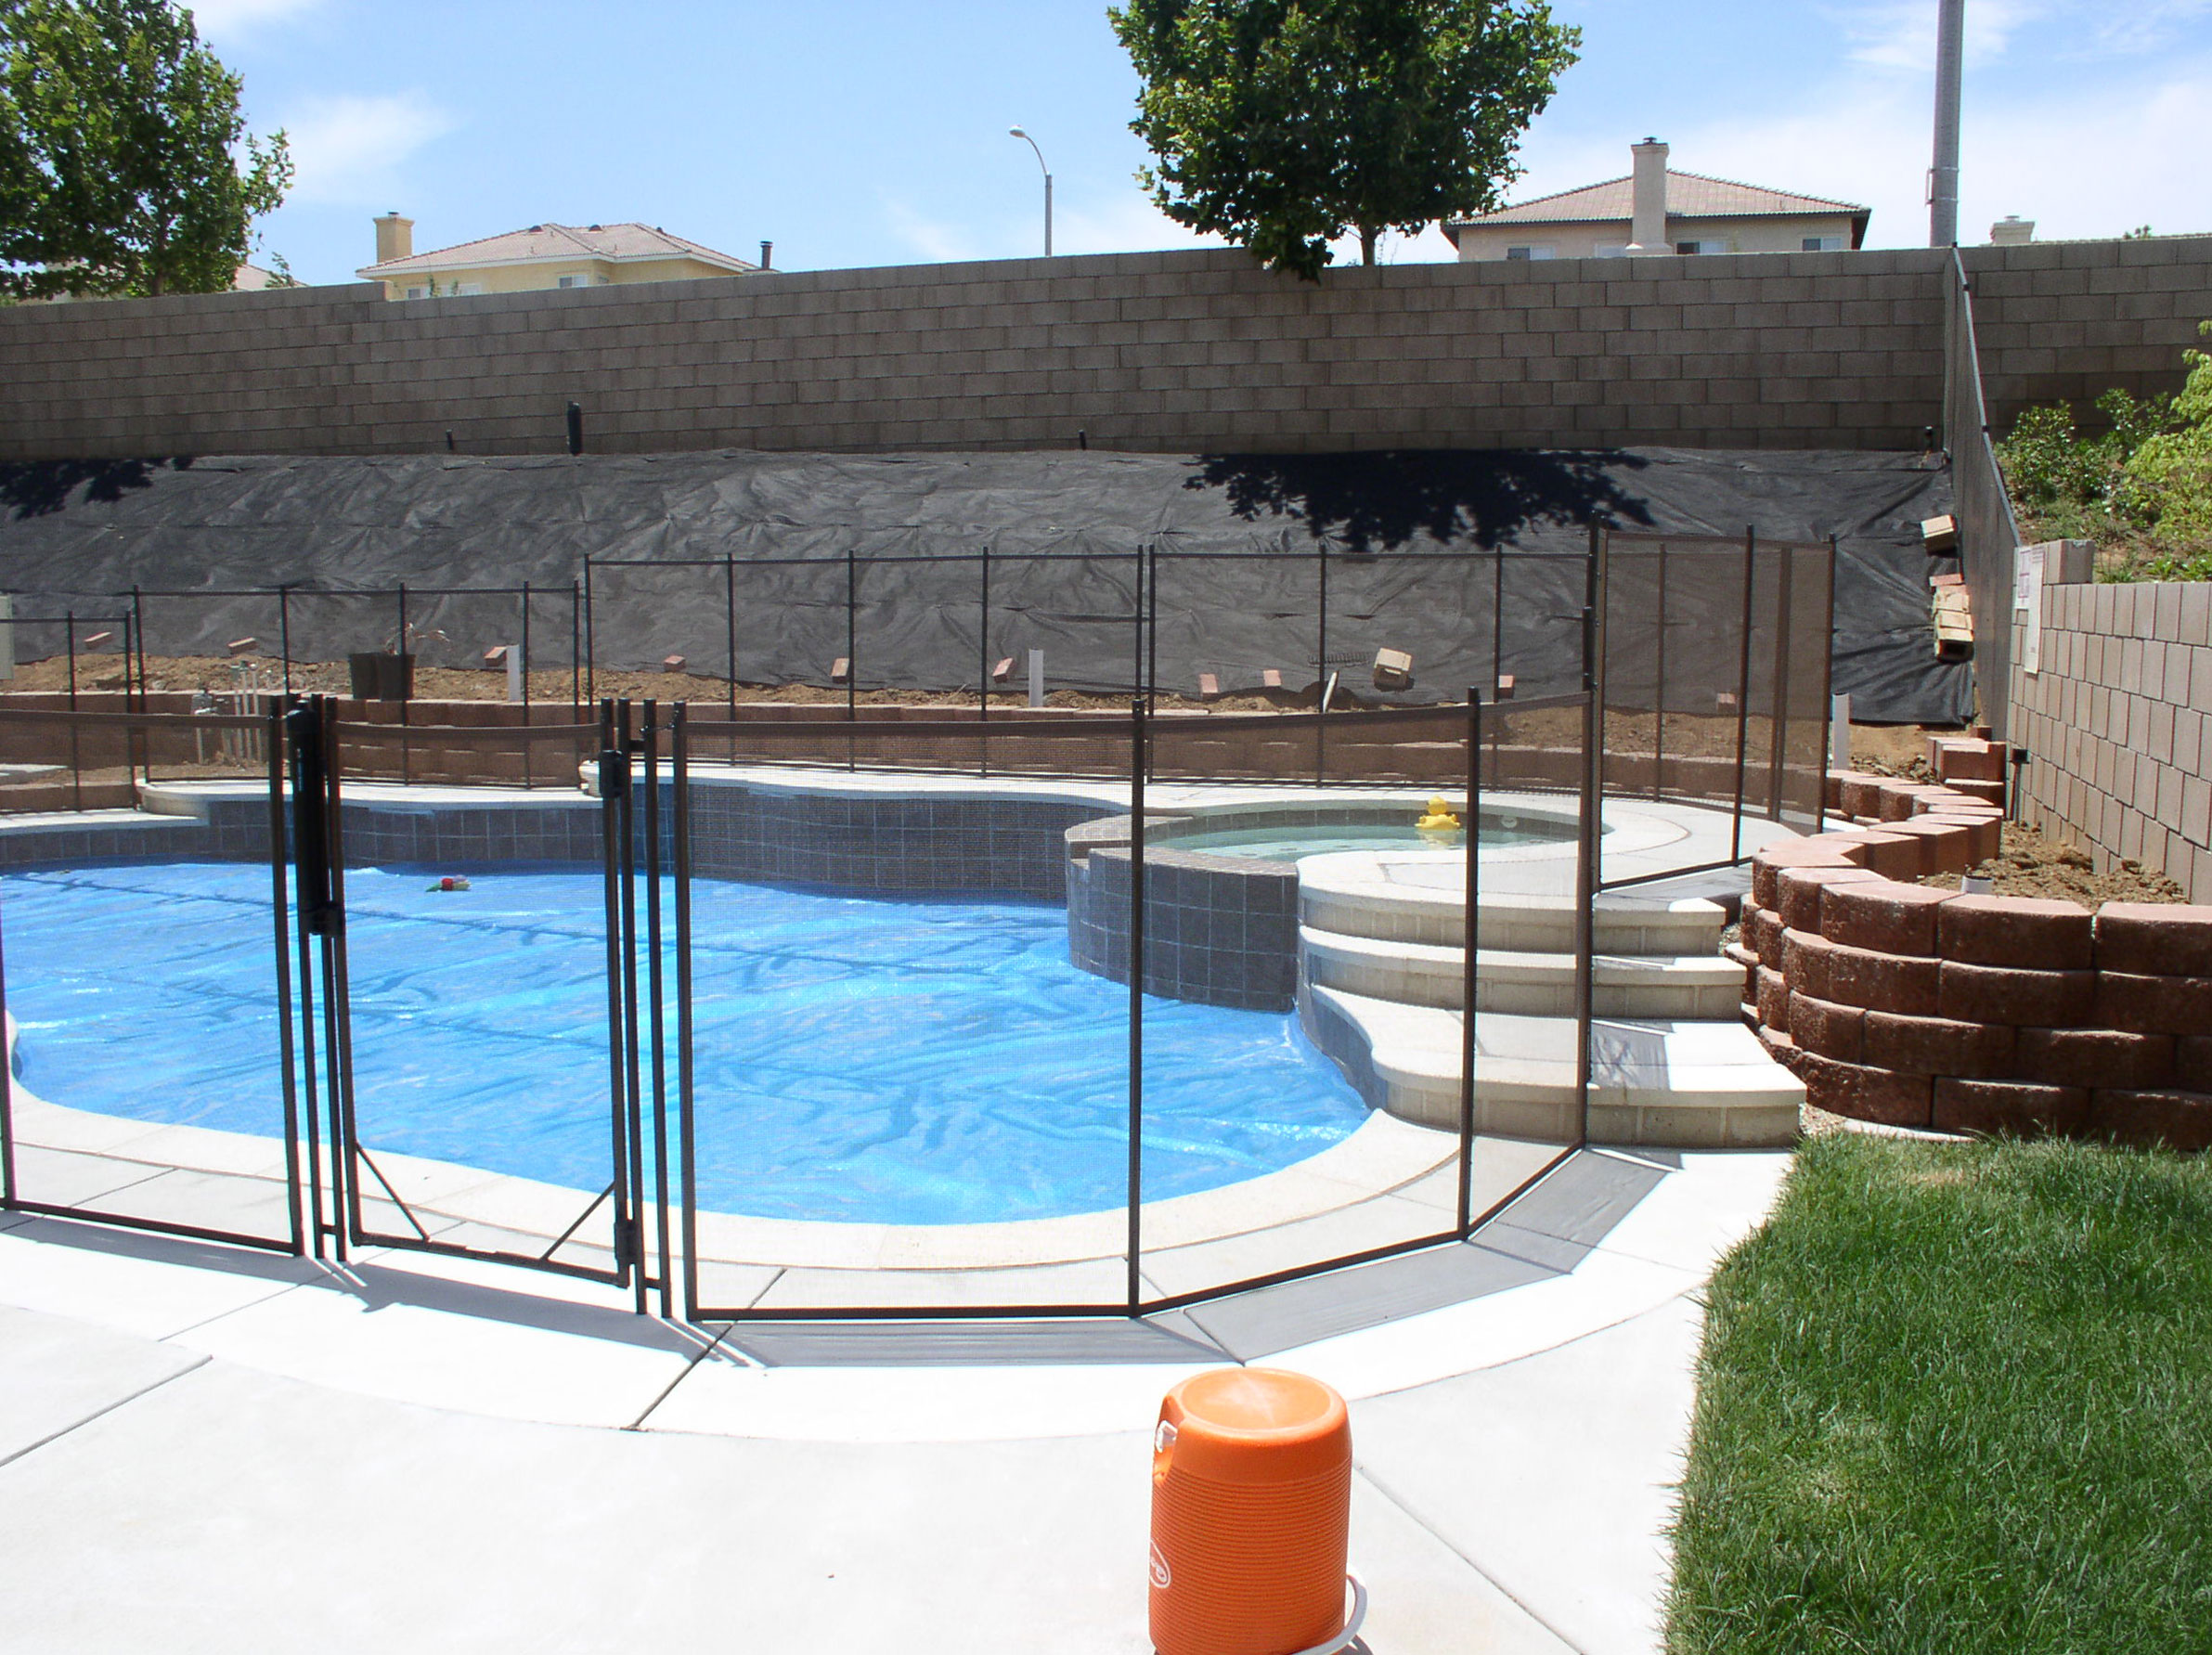 Swimming pool health and safety rules hpju design on vine for Swimming pool health and safety rules